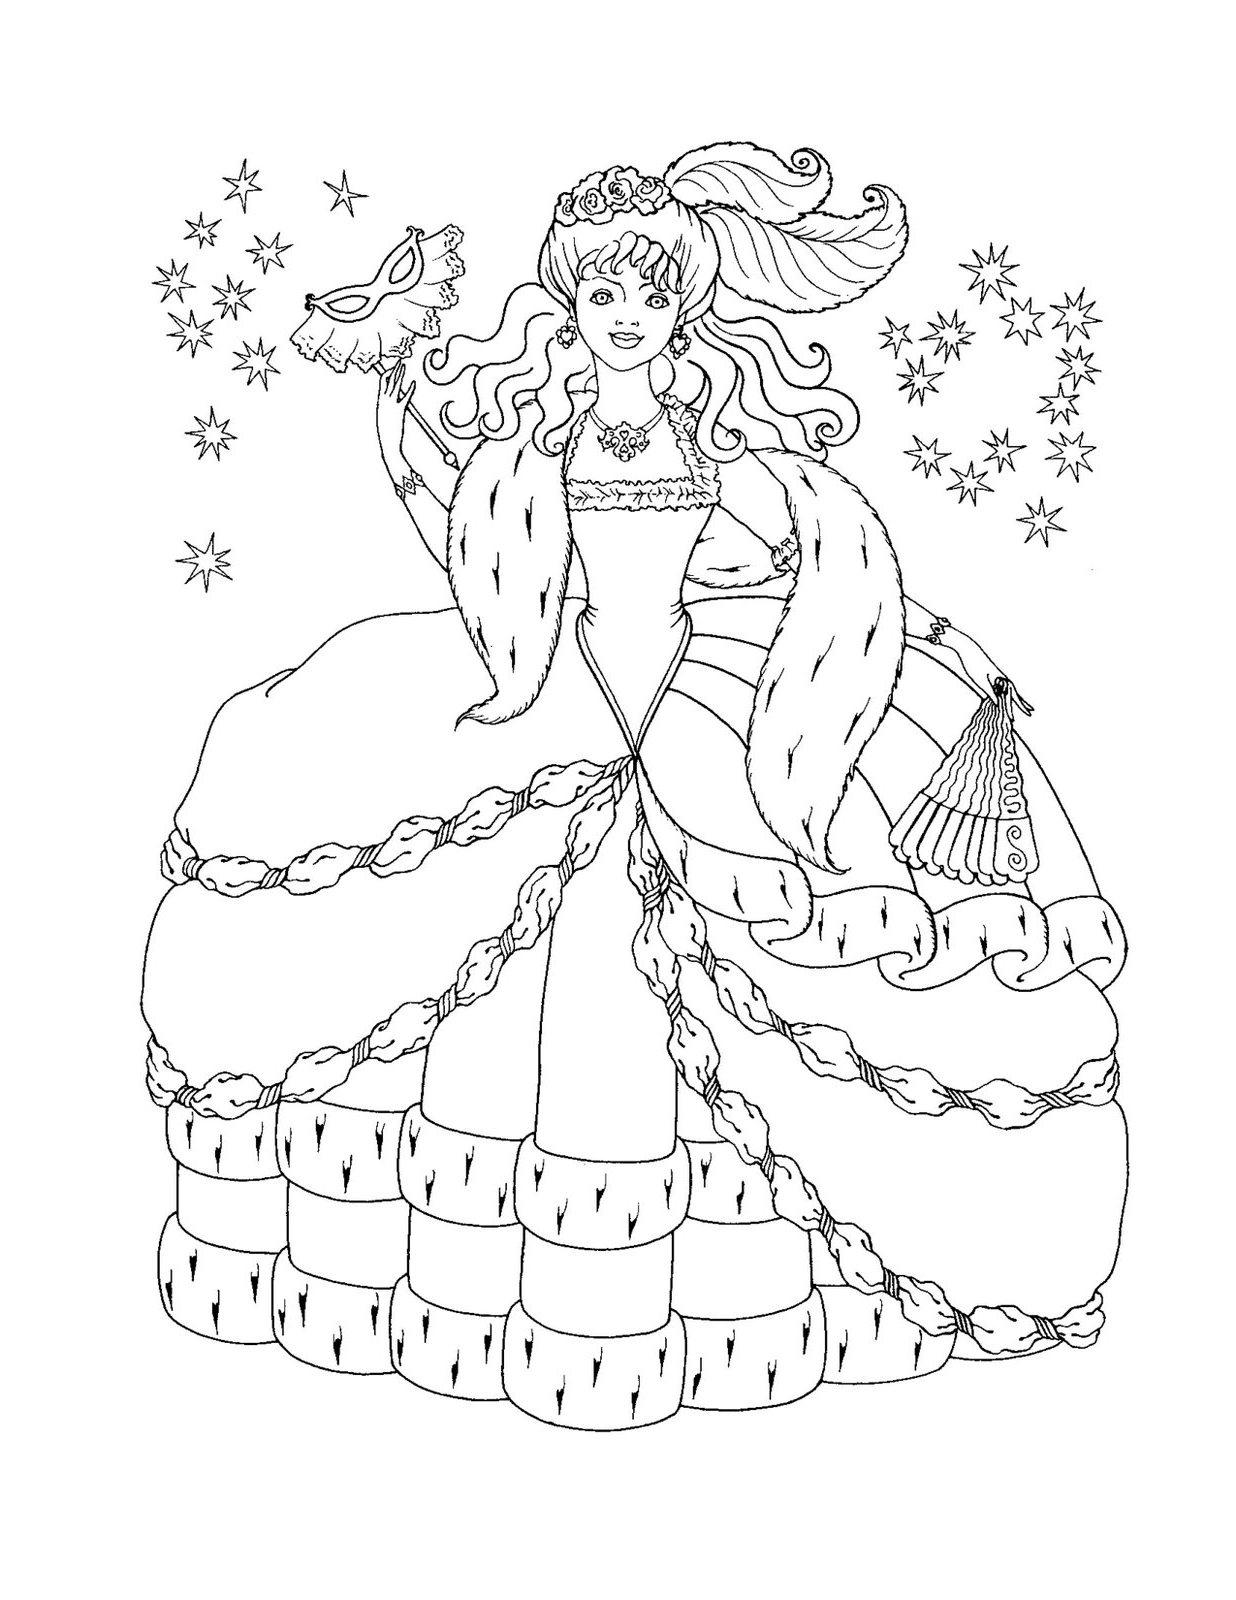 Princess aurora coloring pages games - Disney Princess Printables Coloring Pages